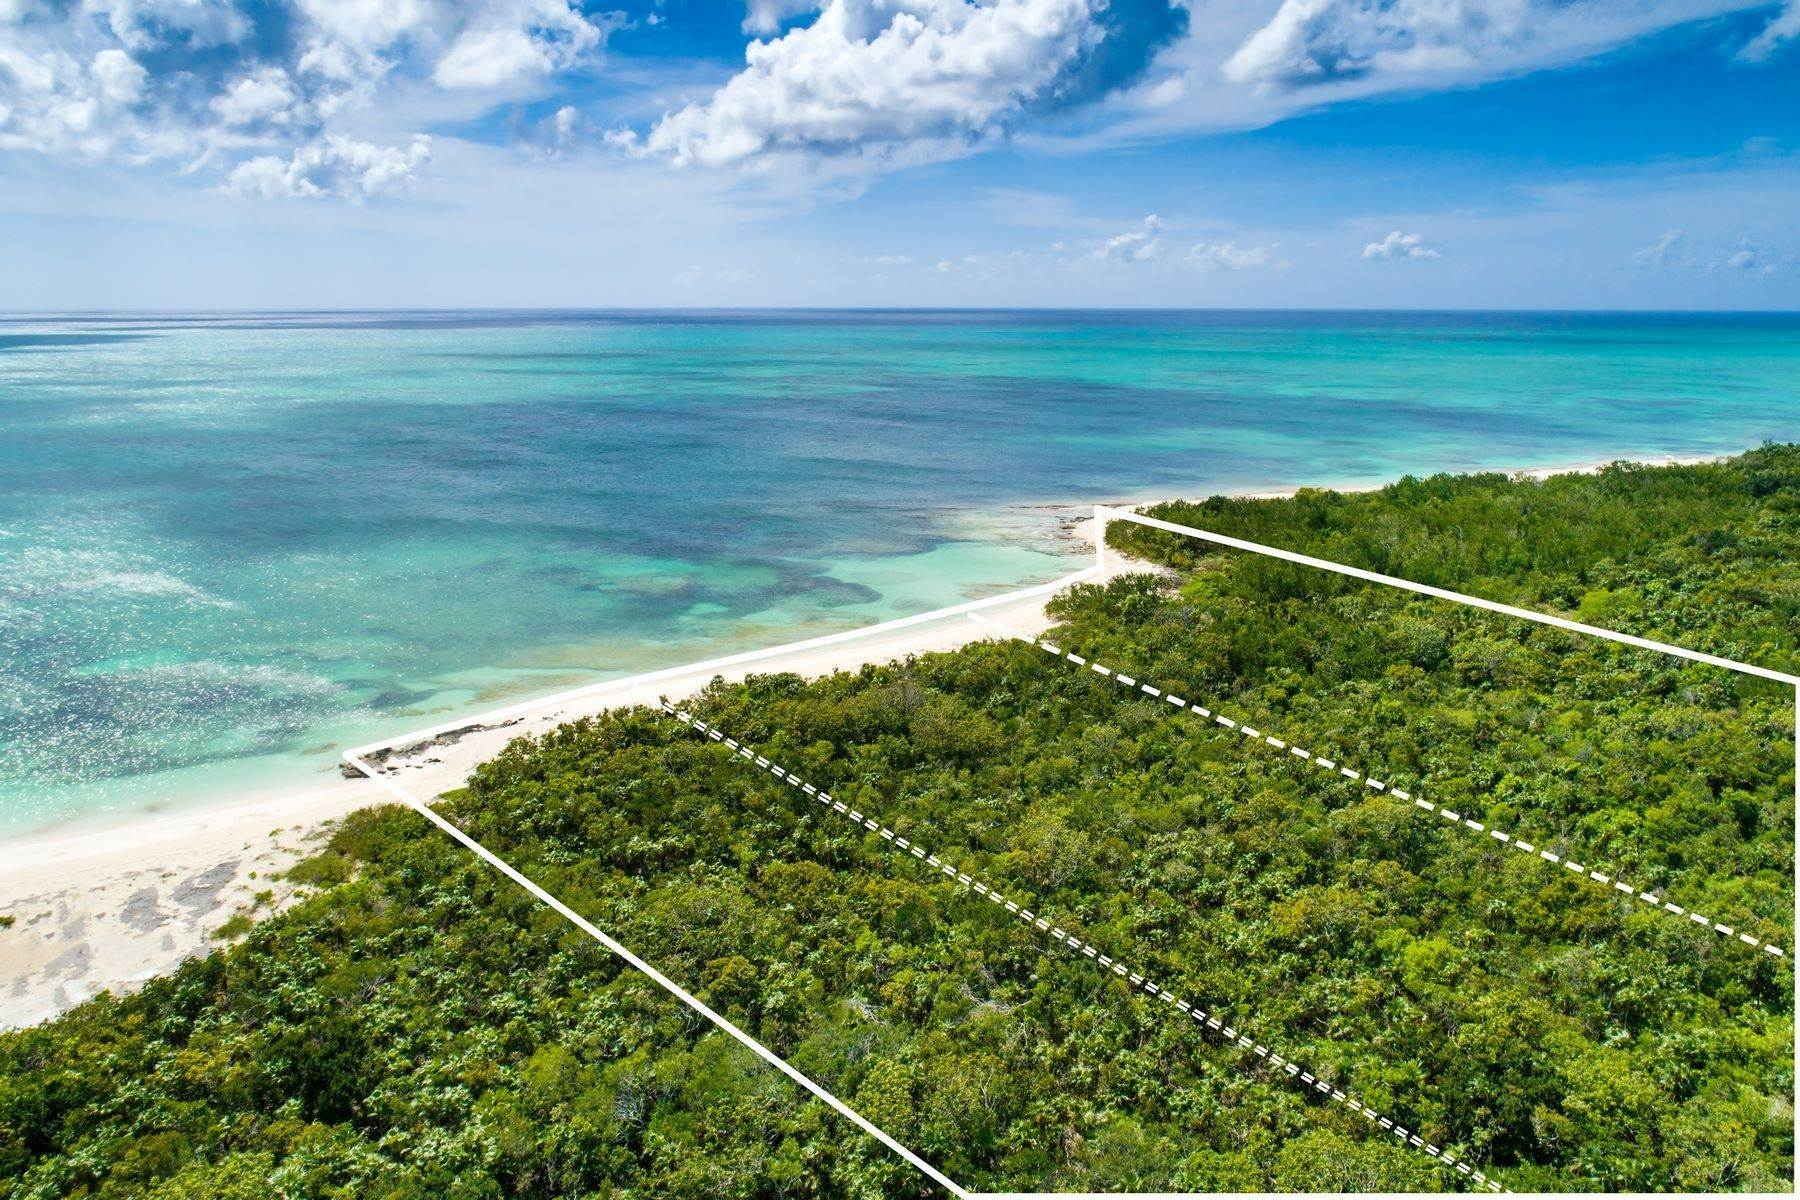 22. Land for Sale at Parrot Cay Estate Land 167, 168 & 169 Parrot Cay, Parrot Cay Turks And Caicos Islands